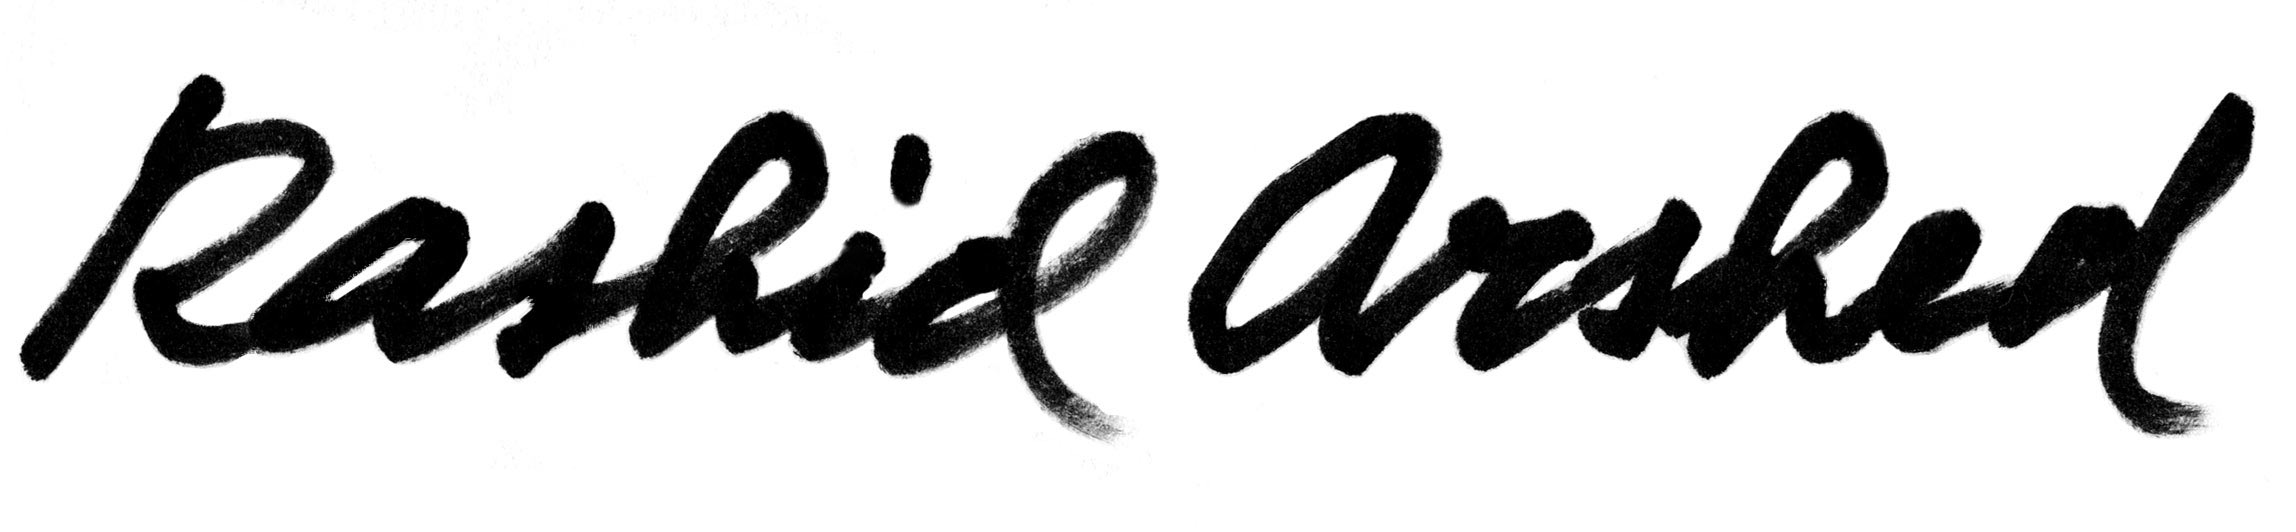 Rashid Arshed Signature